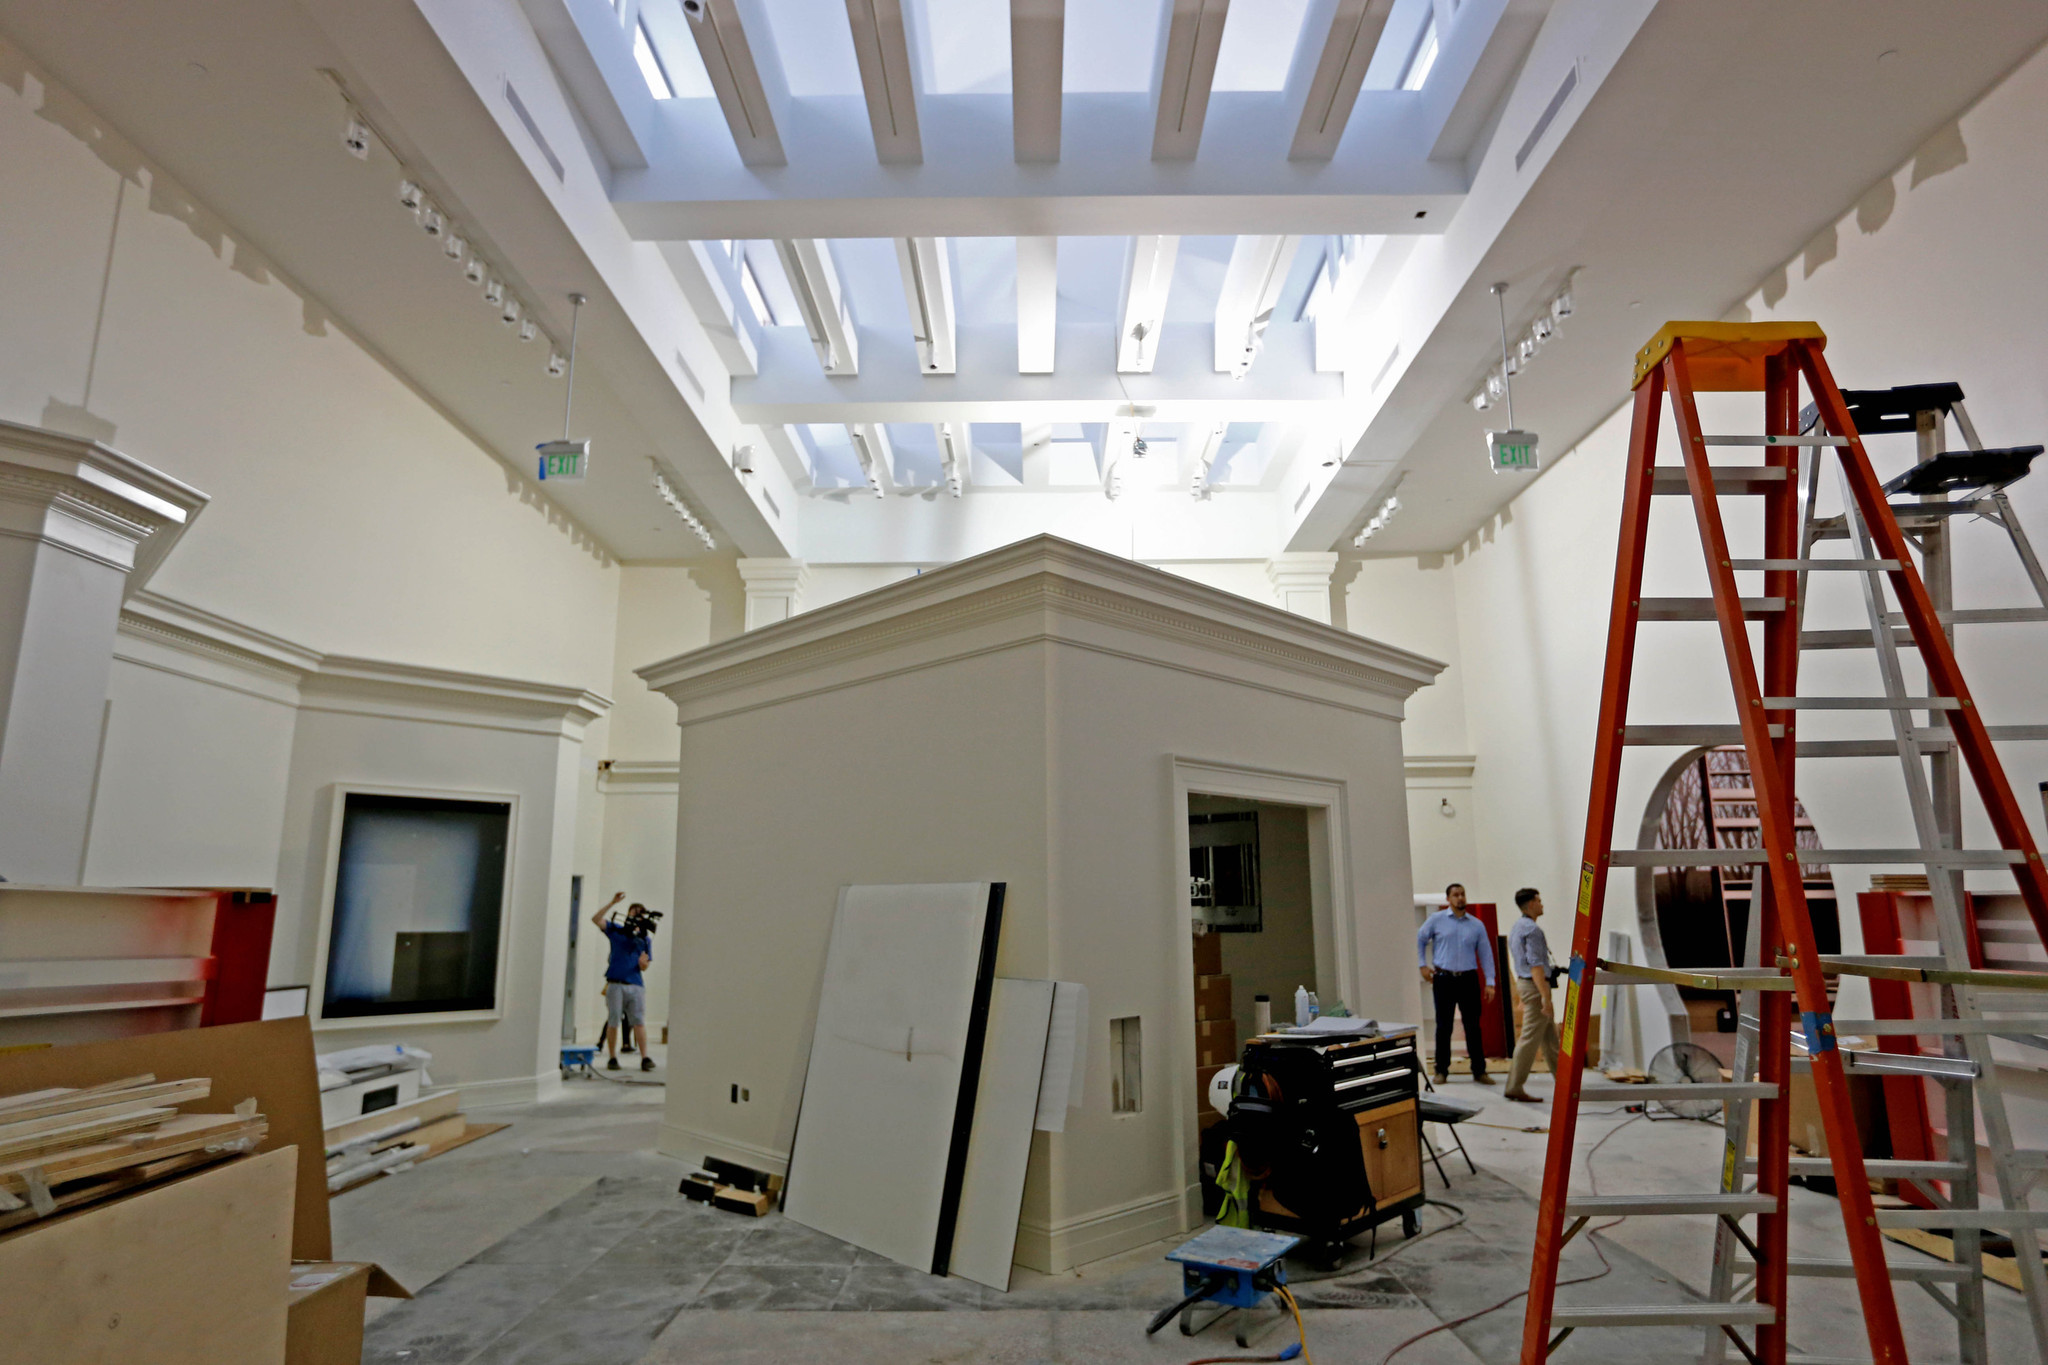 The museum, scheduled to open to the public on Oct. 14, 2016, after a $15-million renovation, will feature nearly 70 new major exhibits, Yorba Linda, Calif., on July 12, 2016.